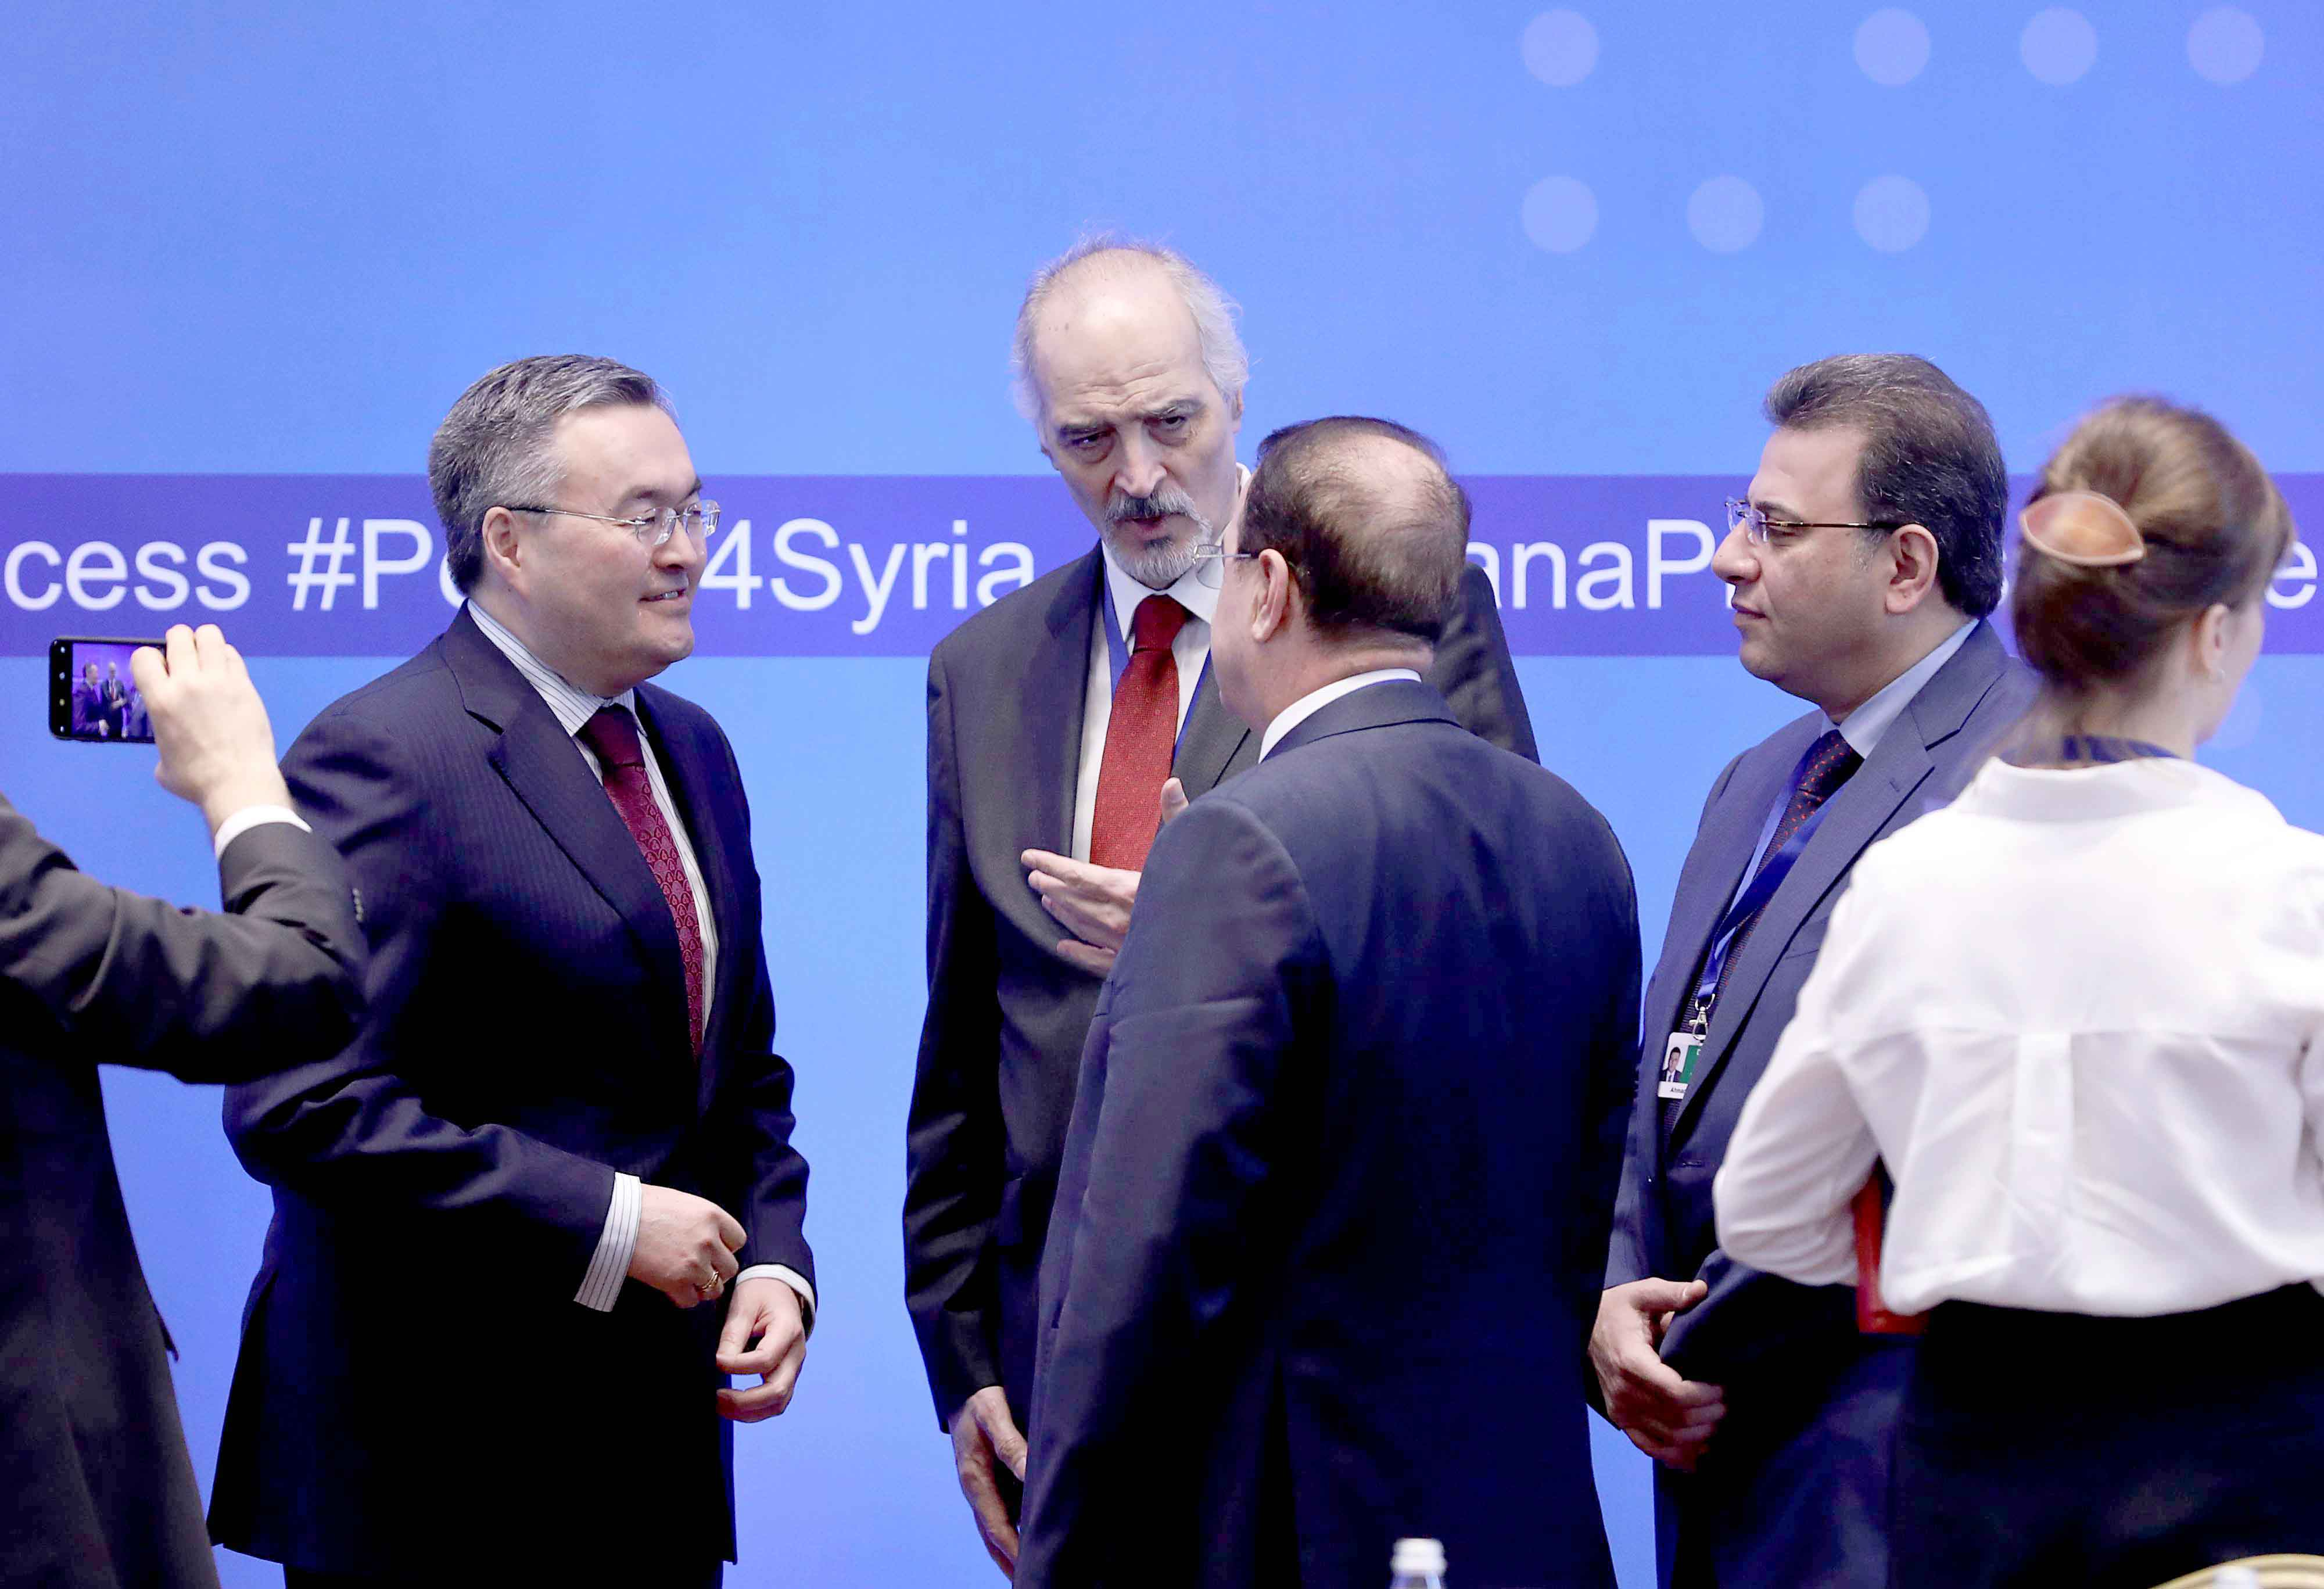 Syria's UN Ambassador Bashar Jaafari (C) speaks with other participants during a session of the peace talks on Syria in Nur-Sultan, April 26. (Reuters)